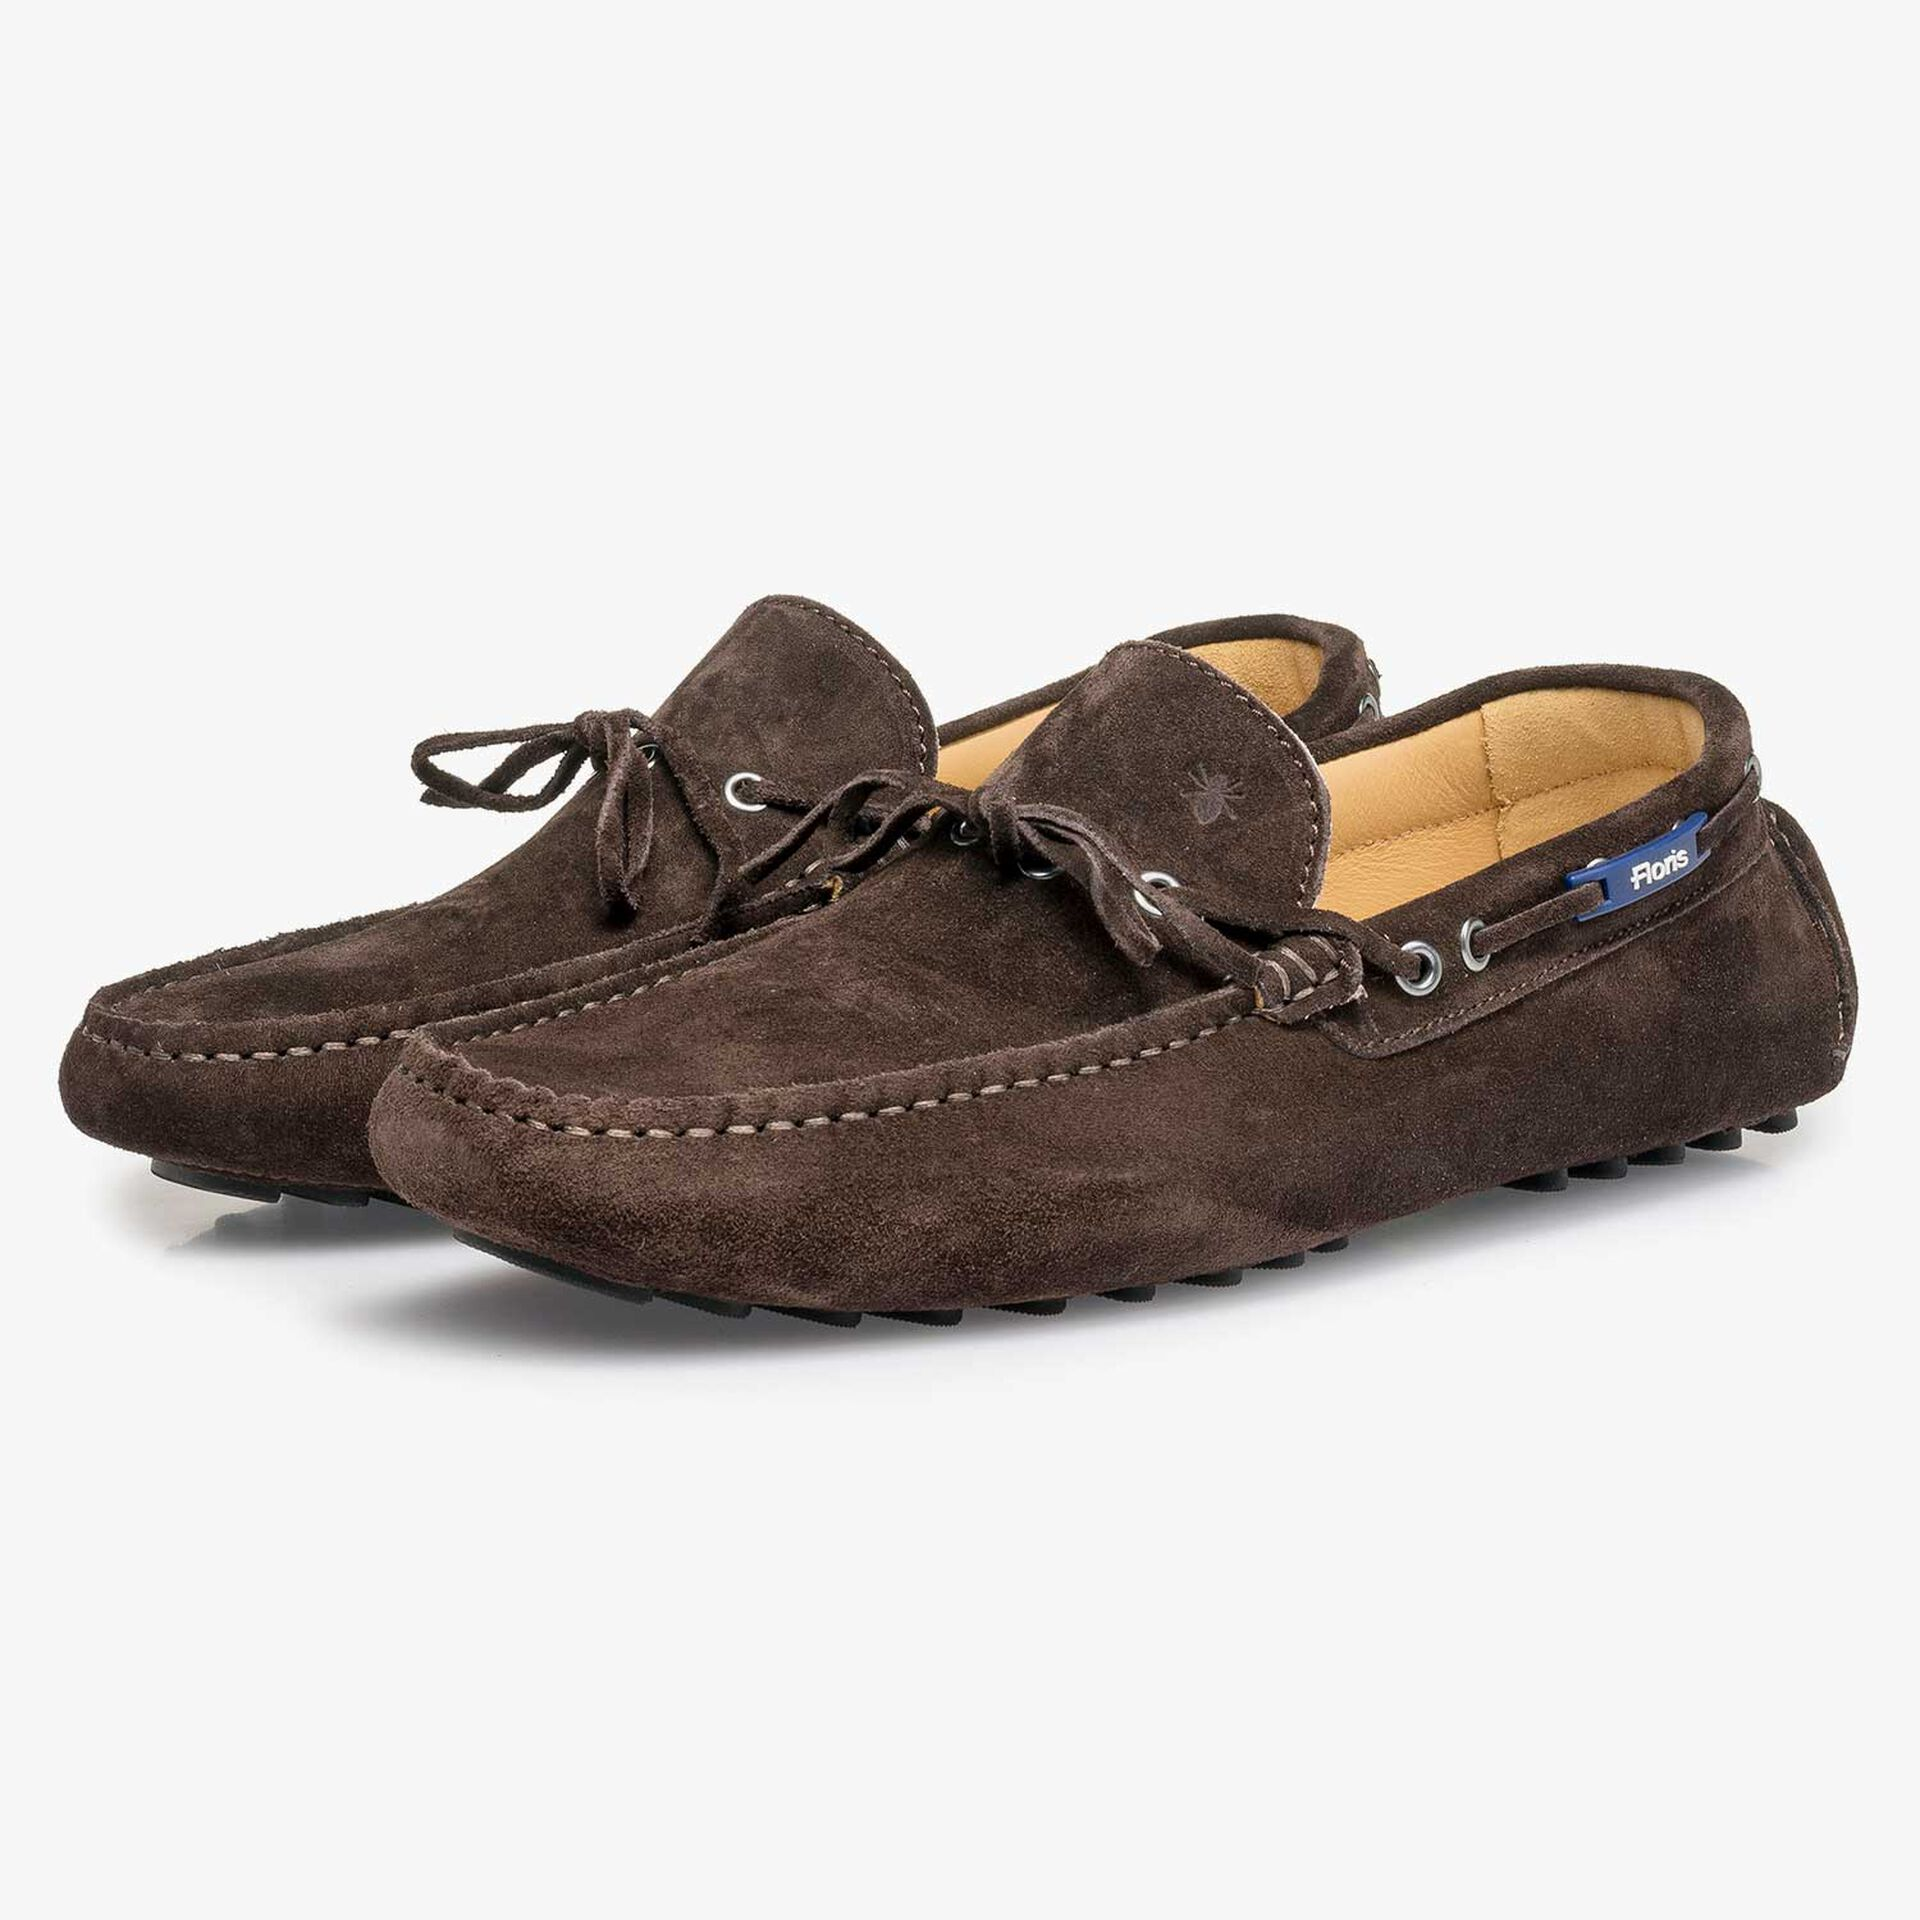 Dark brown calf suede leather moccasin